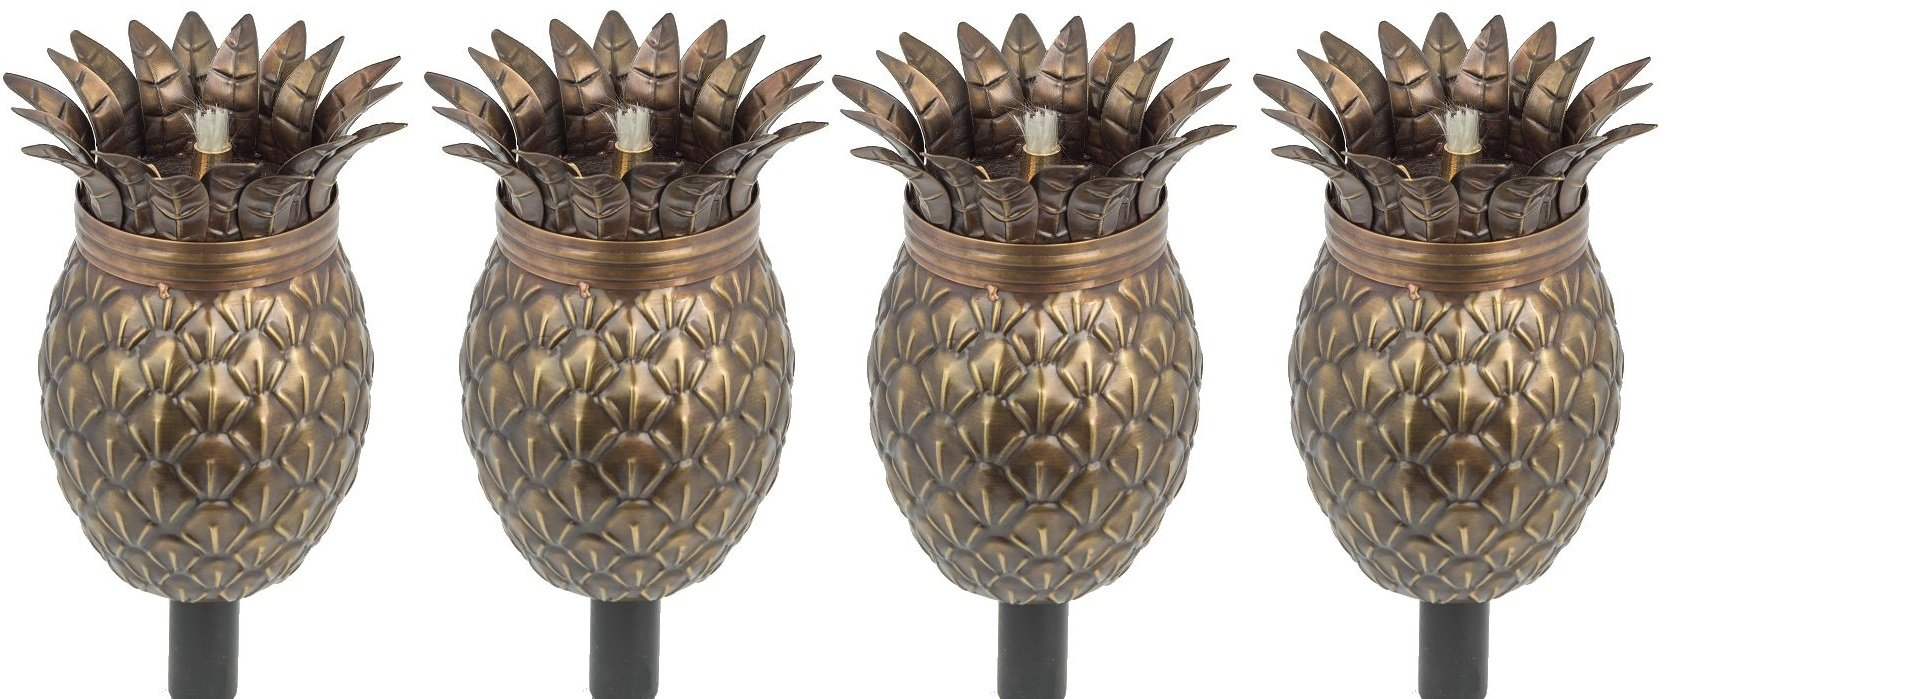 Legends Maui Outdoor Garden Torches with Poles, Set-of-4, (Bronze Pineapple) by Legends Direct